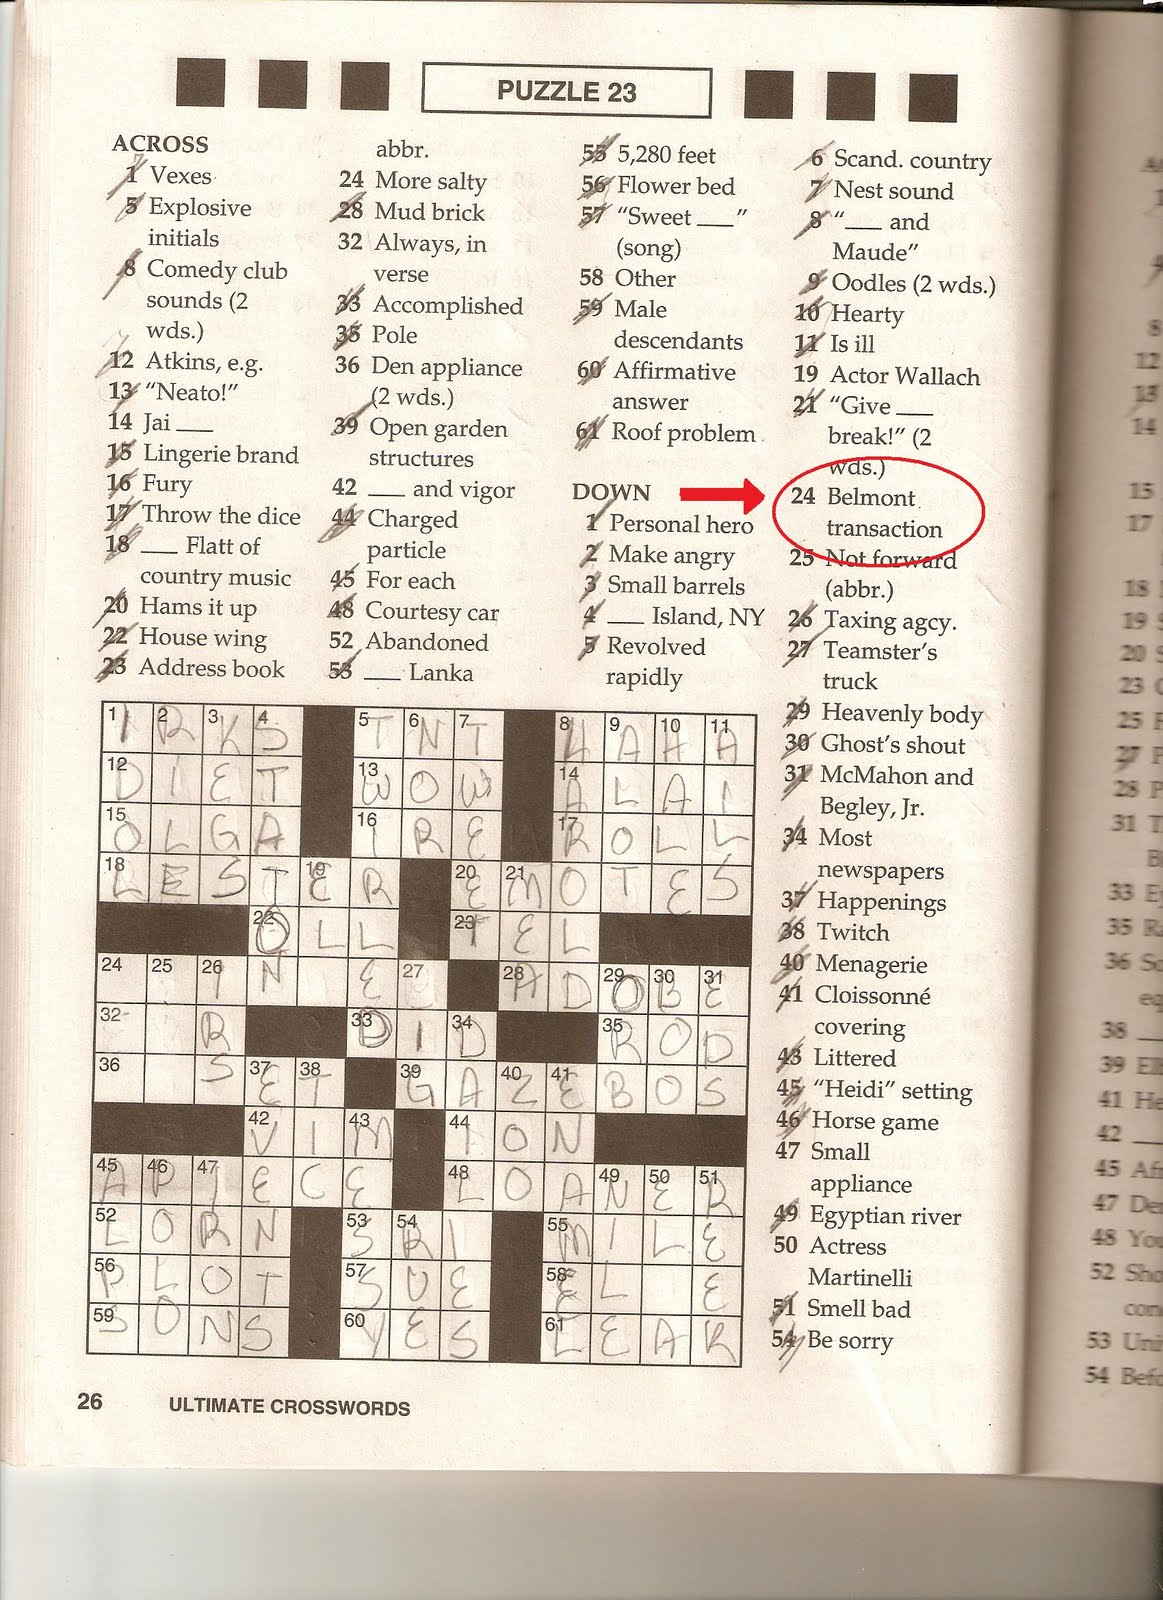 USA Today Crossword Printable